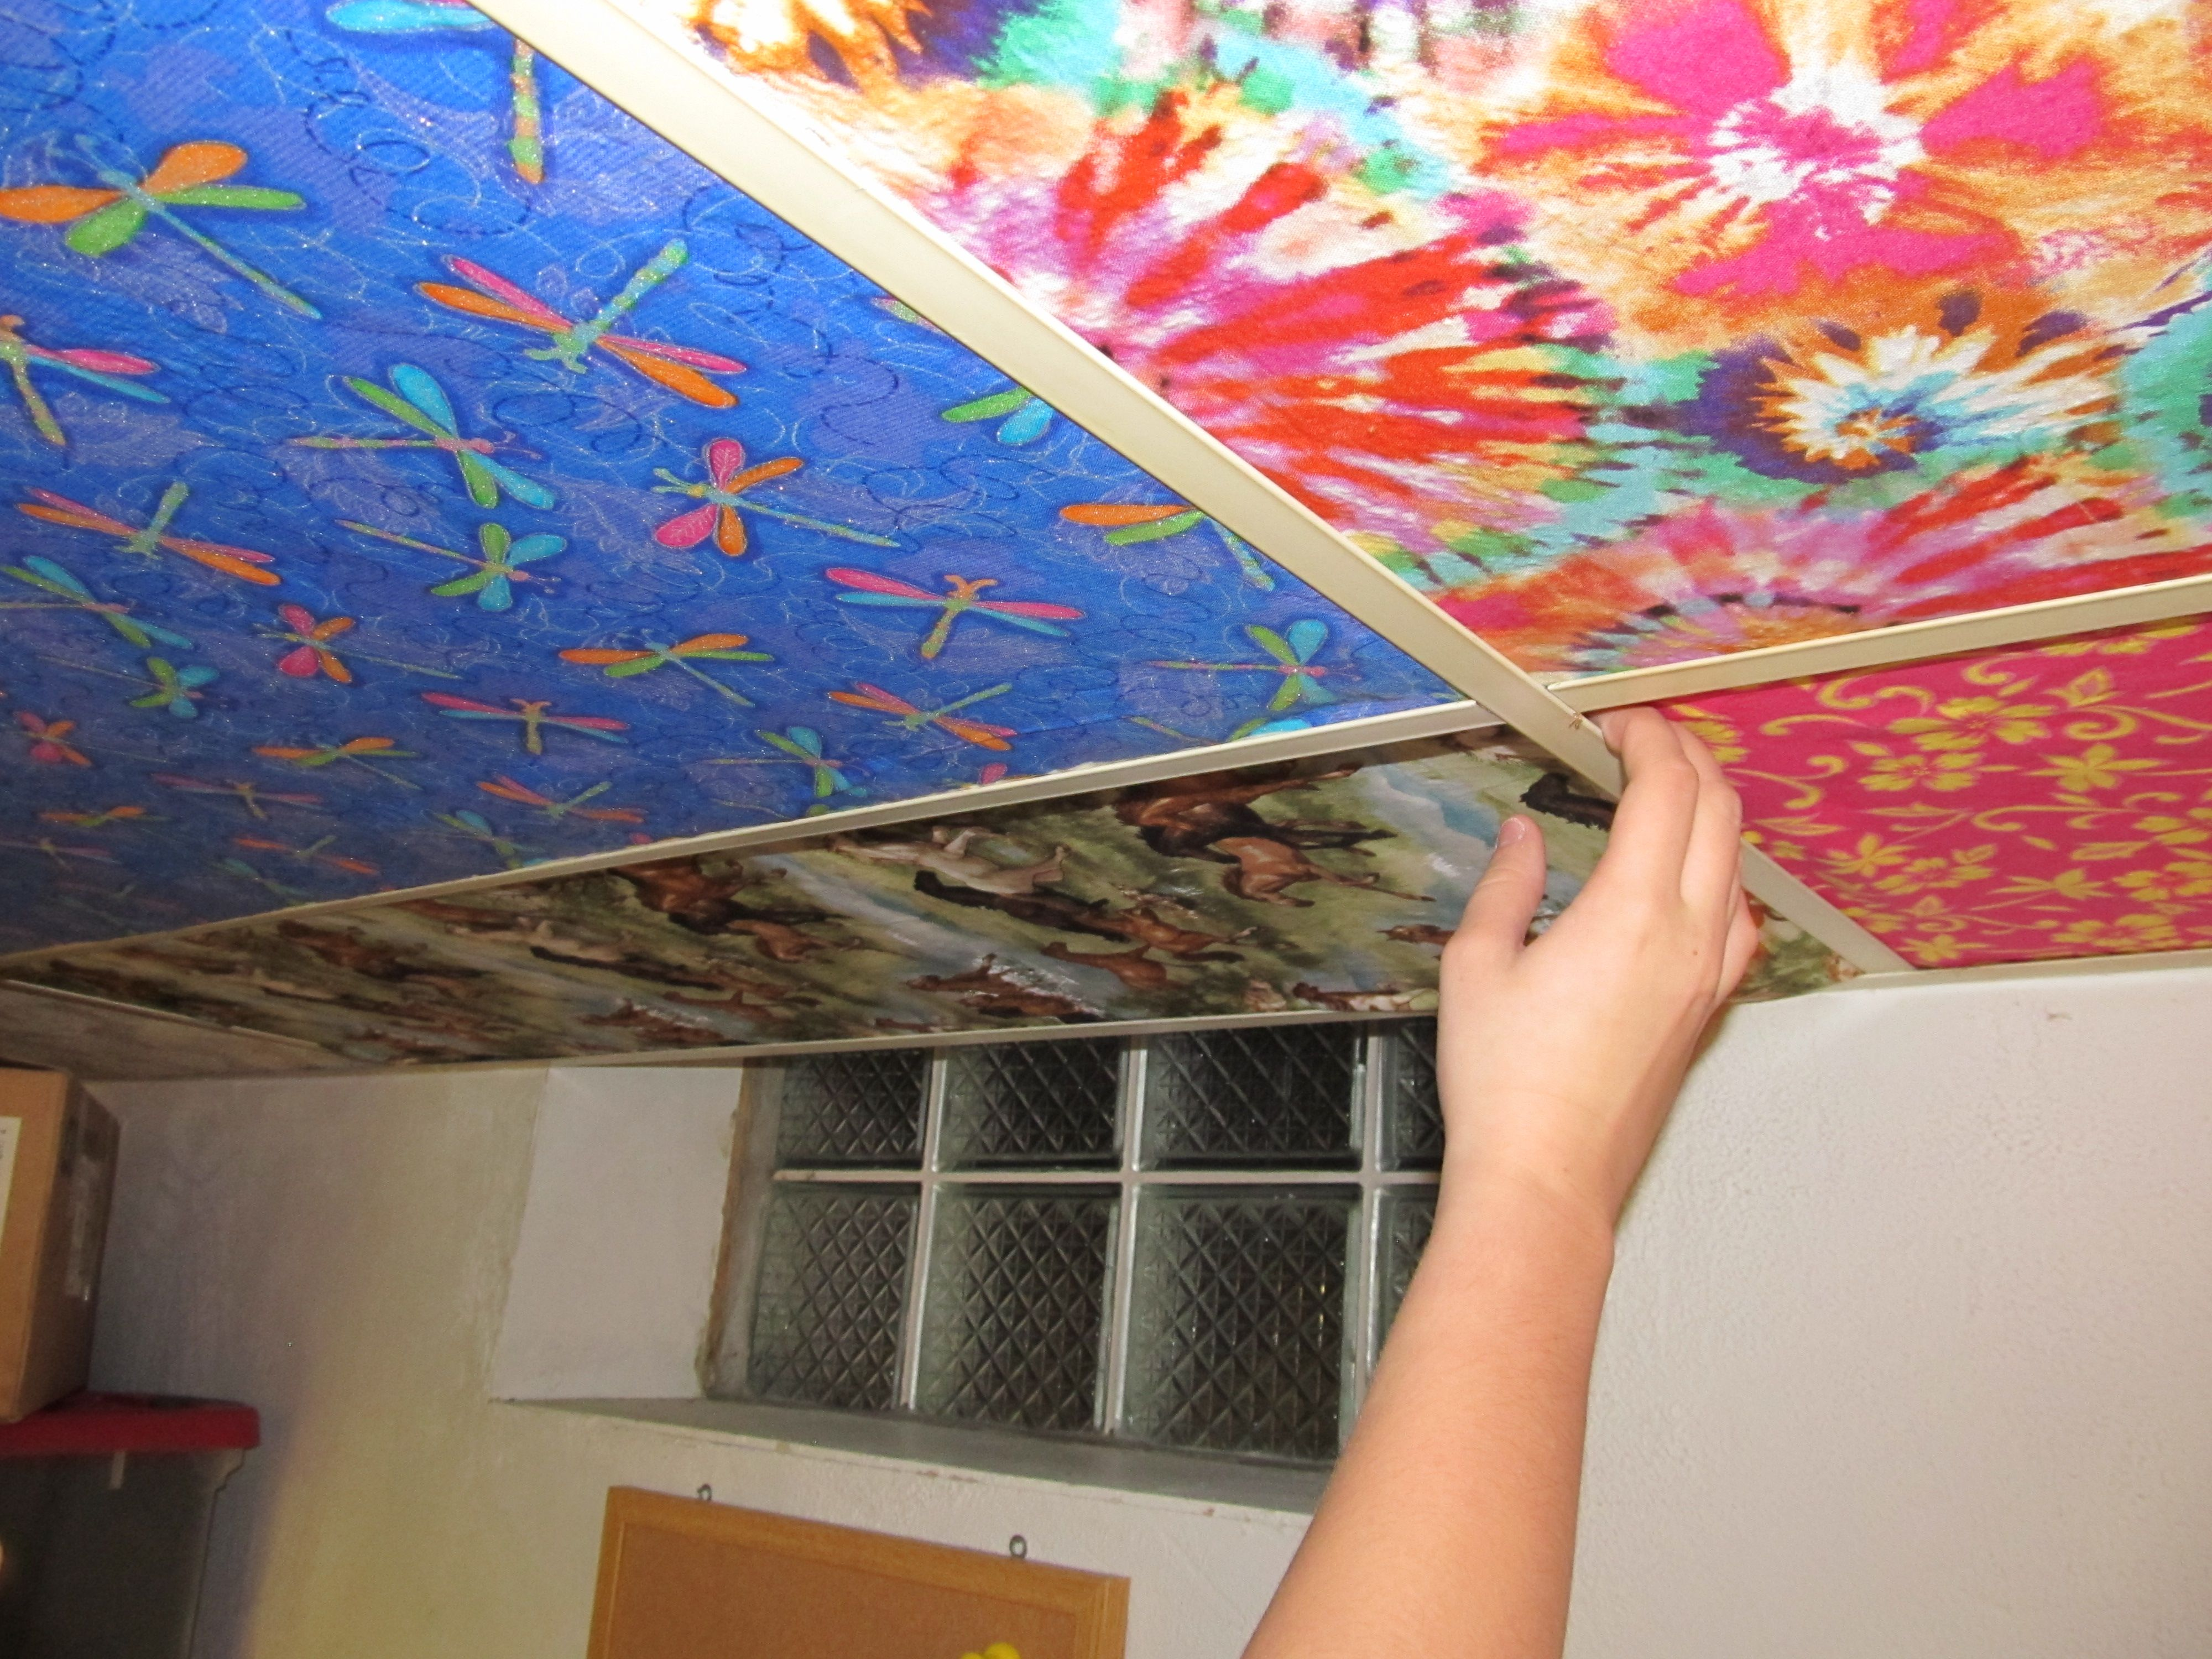 Tutorial: Cover Ugly Ceiling Tiles with FABRIC ...